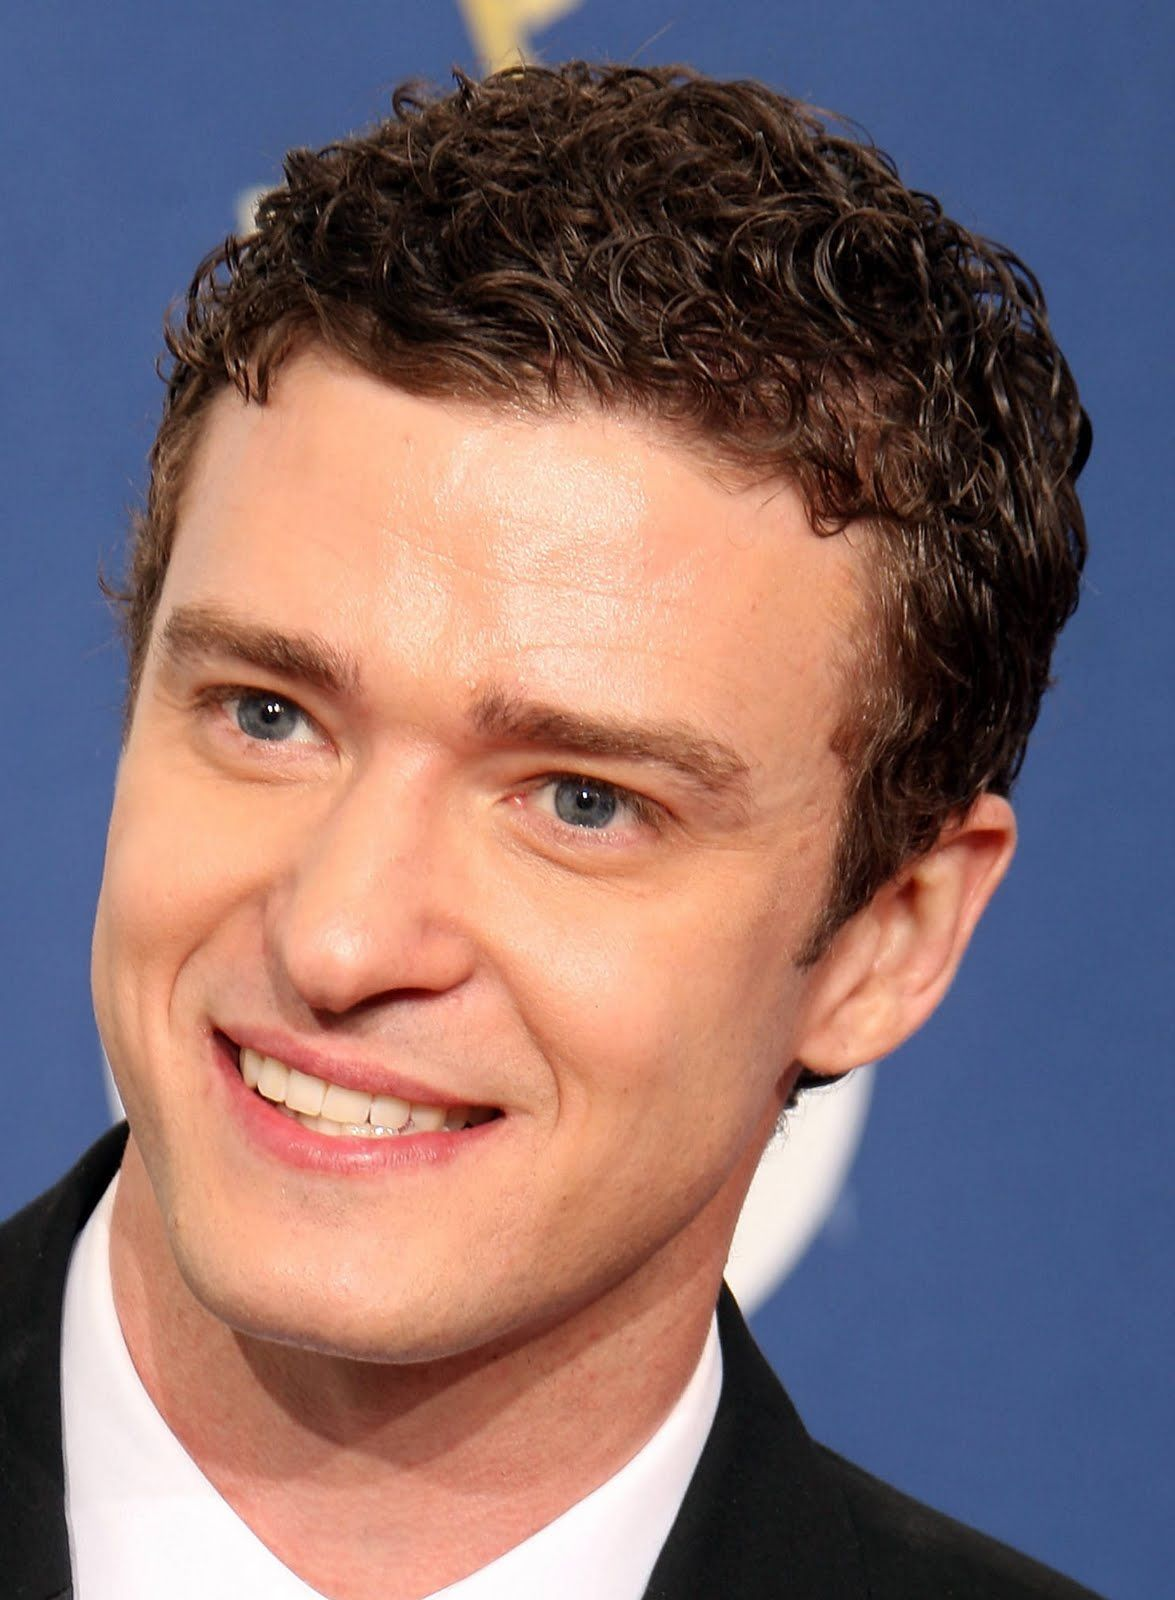 Curly hairstyles for men justin timberlake hair ideas